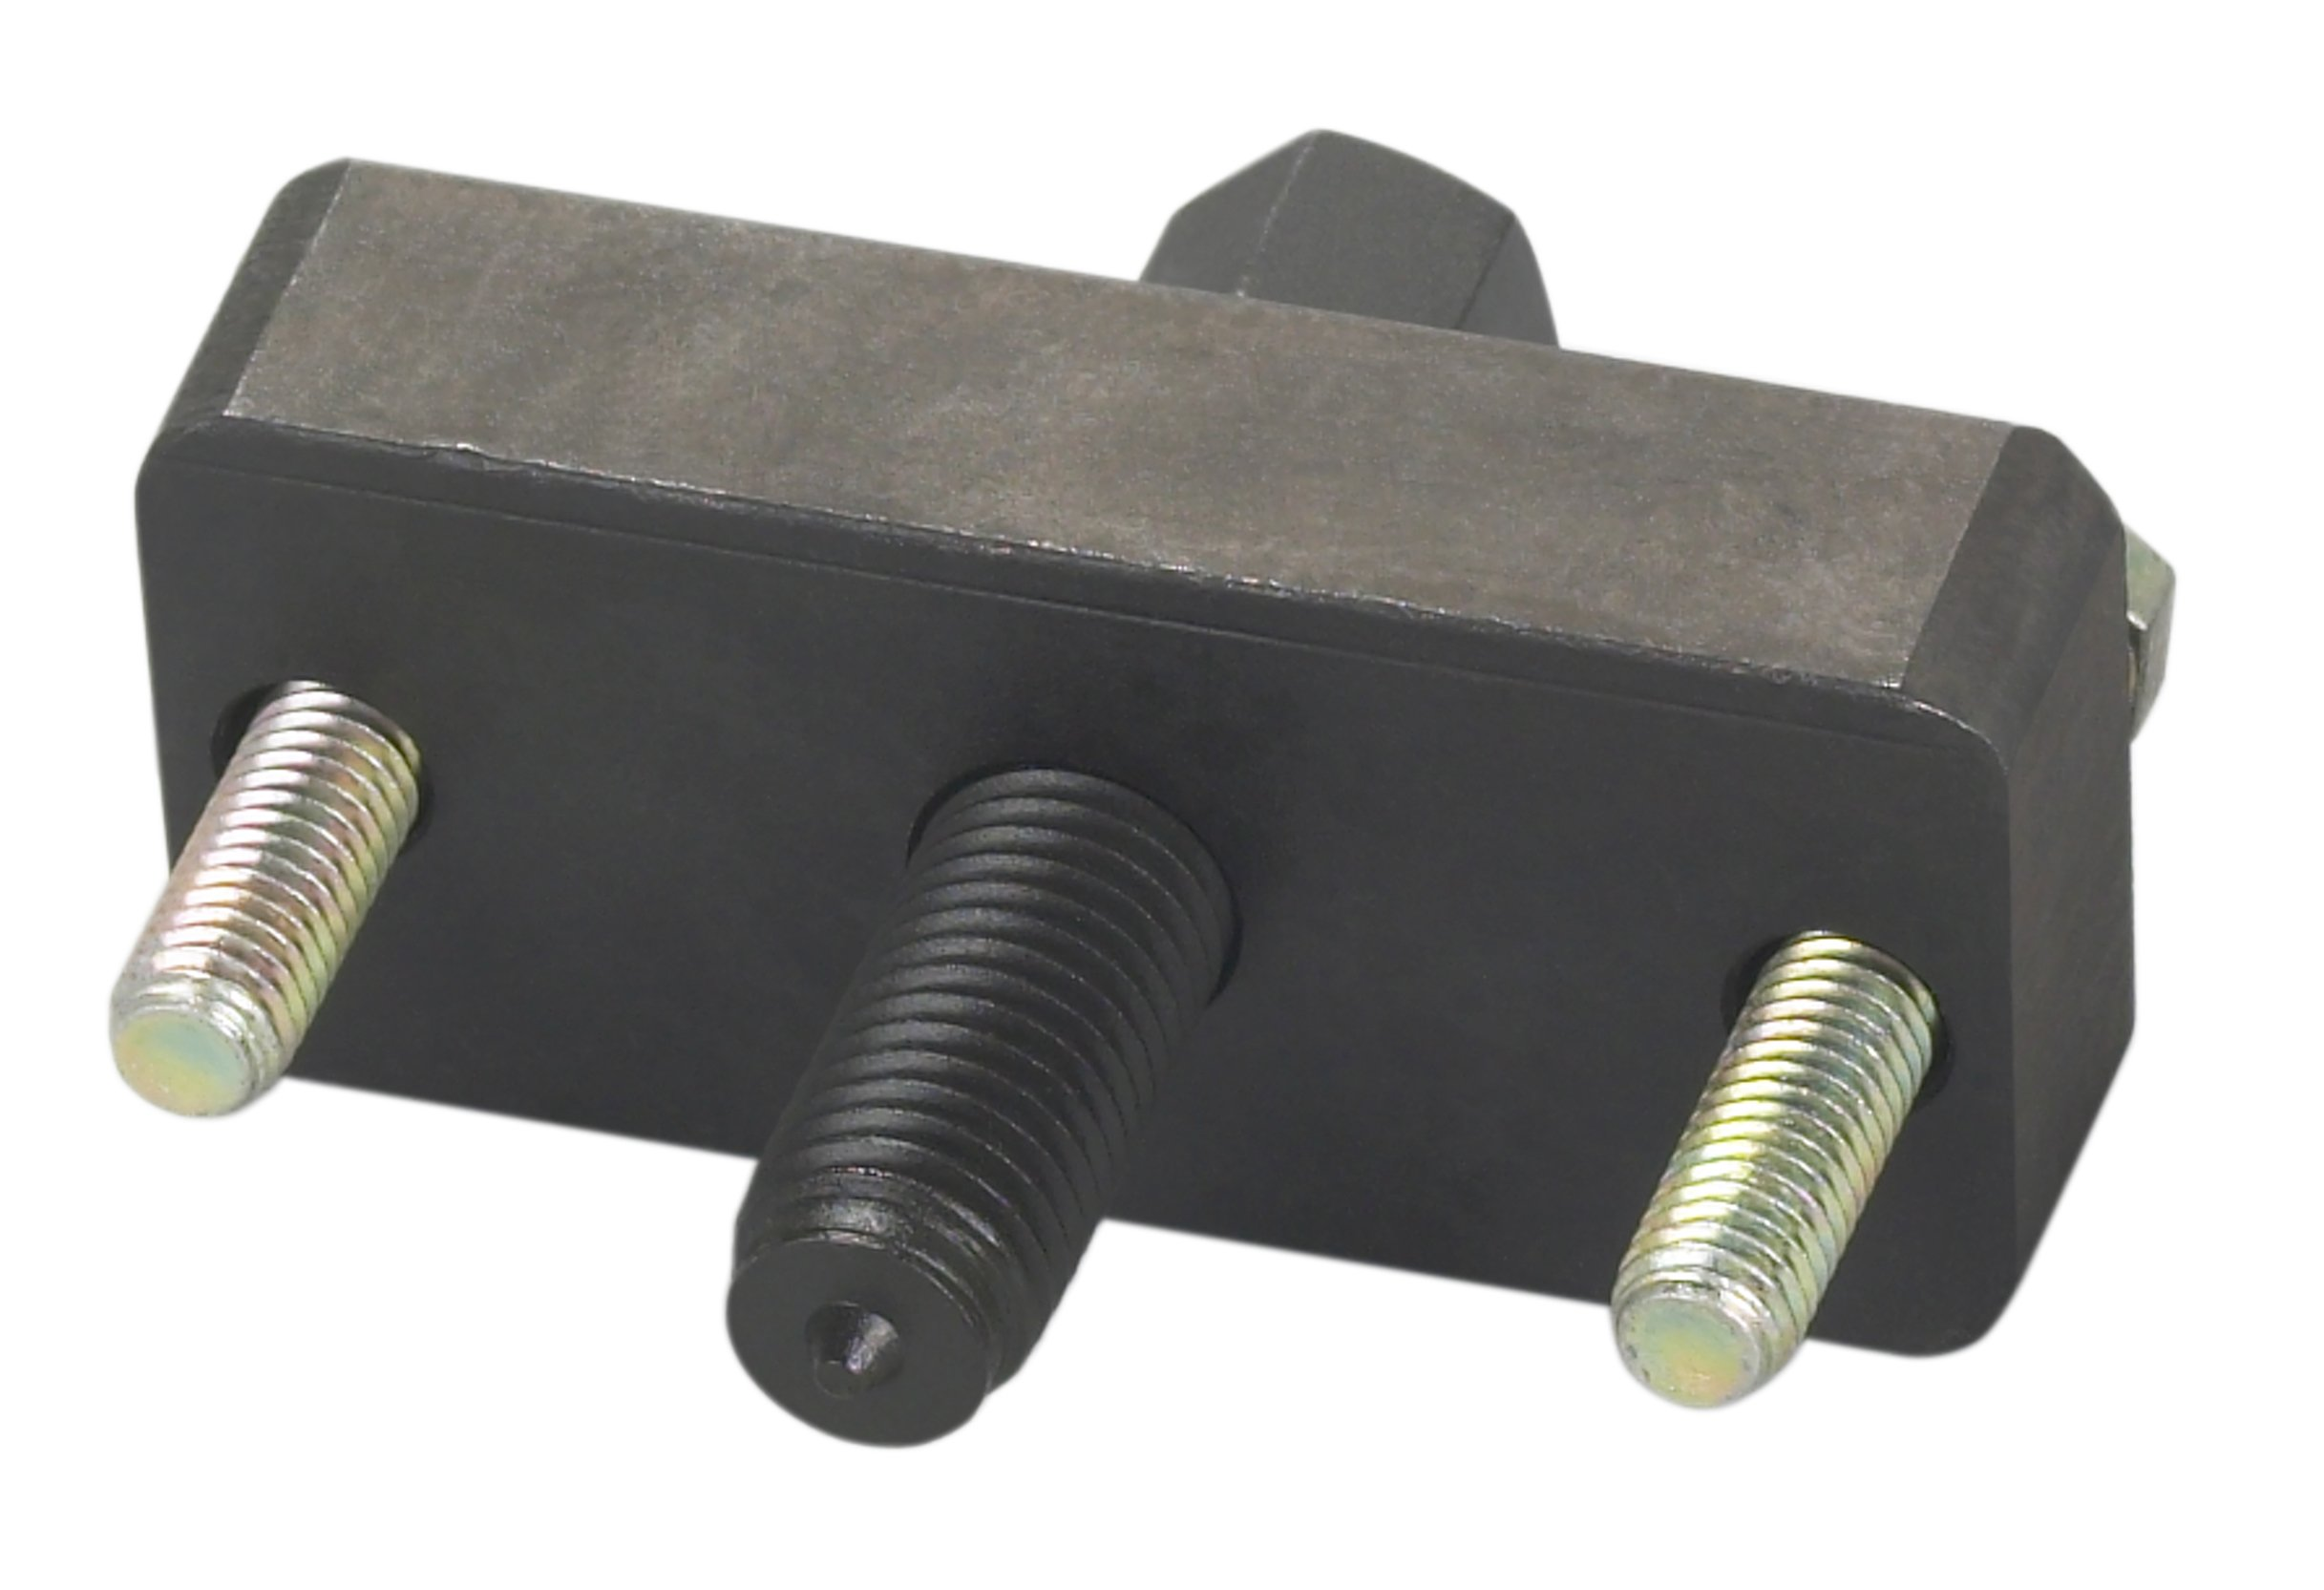 OTC (7120B) Drive-Pulley Remover for Cummins by OTC (Image #1)